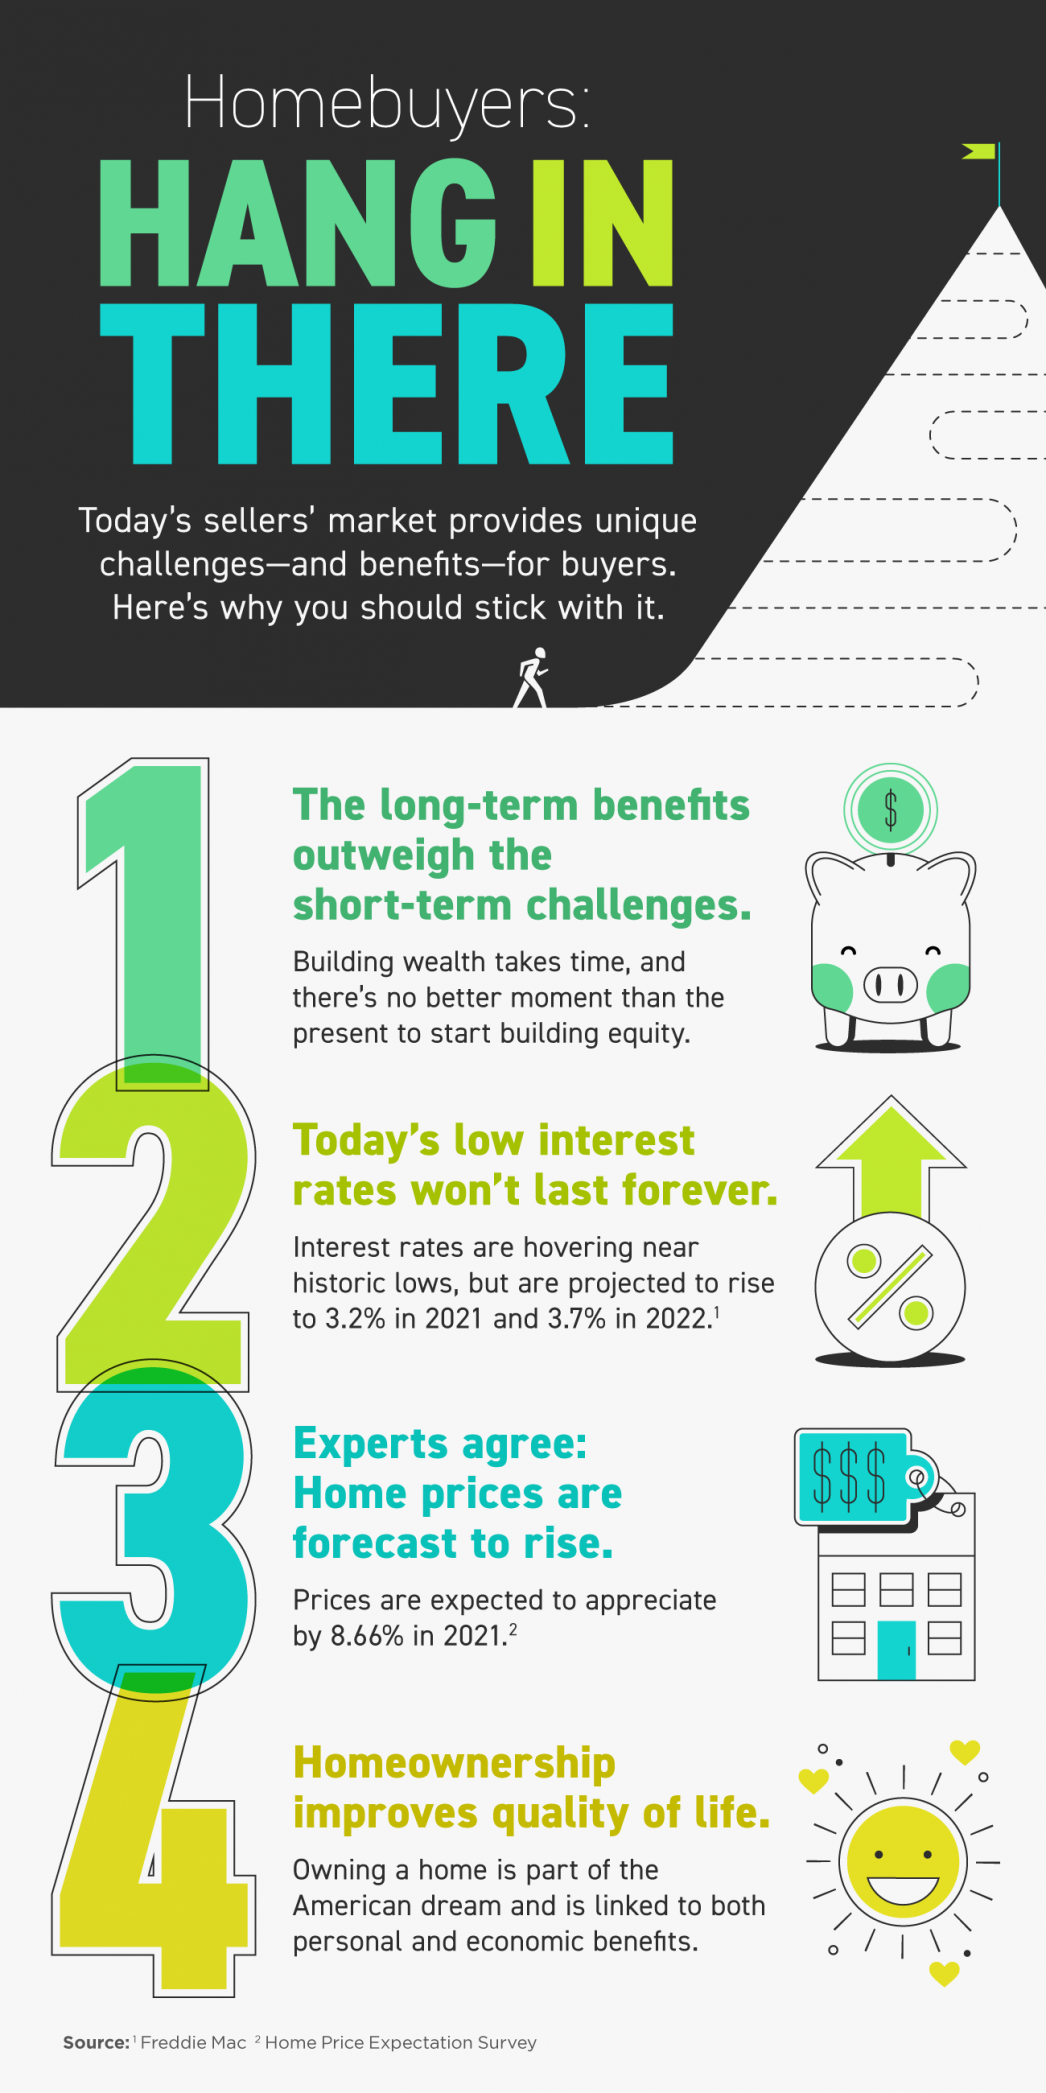 Homebuyers: Hang in There [INFOGRAPHIC]   Tony Vejar  REALTOR®   Arizona Homes   Homes for sale